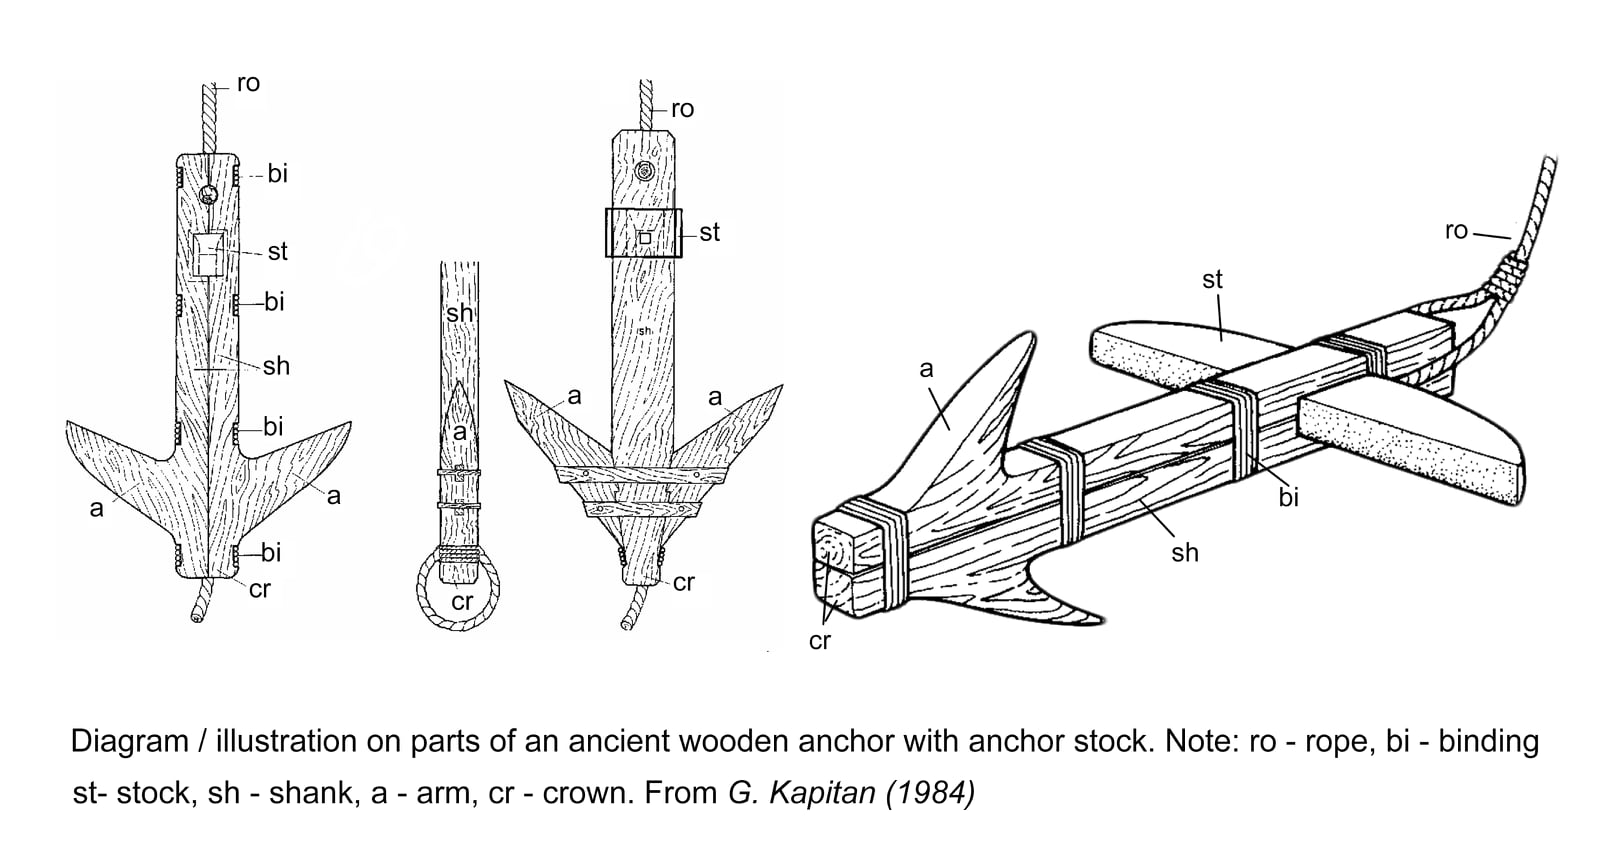 Illustration on parts of an ancient wooden anchor with anchor stock. (from G. Kapitan 1984)